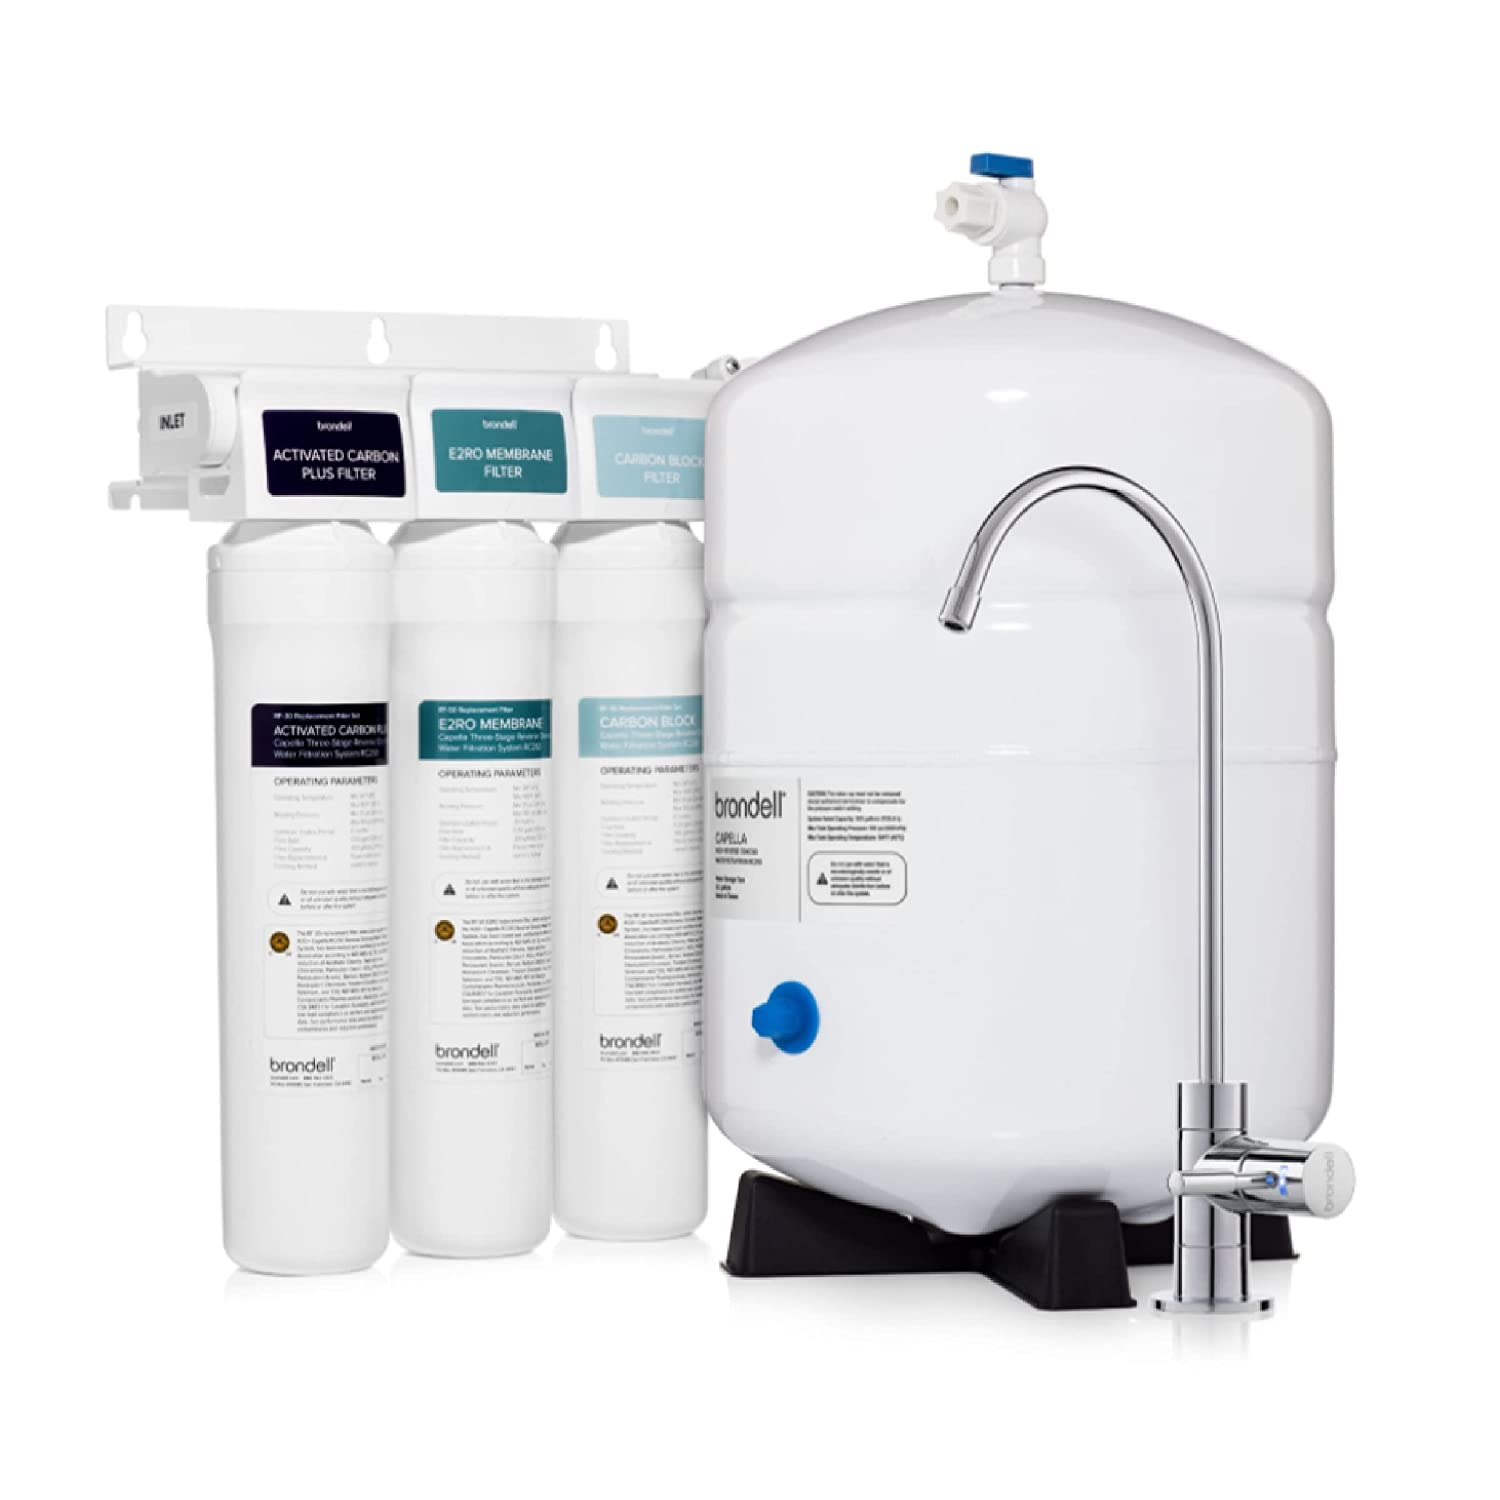 Capella Reverse Osmosis Water Quality inspection Filtration WQA - RO Max 44% OFF Certified syst